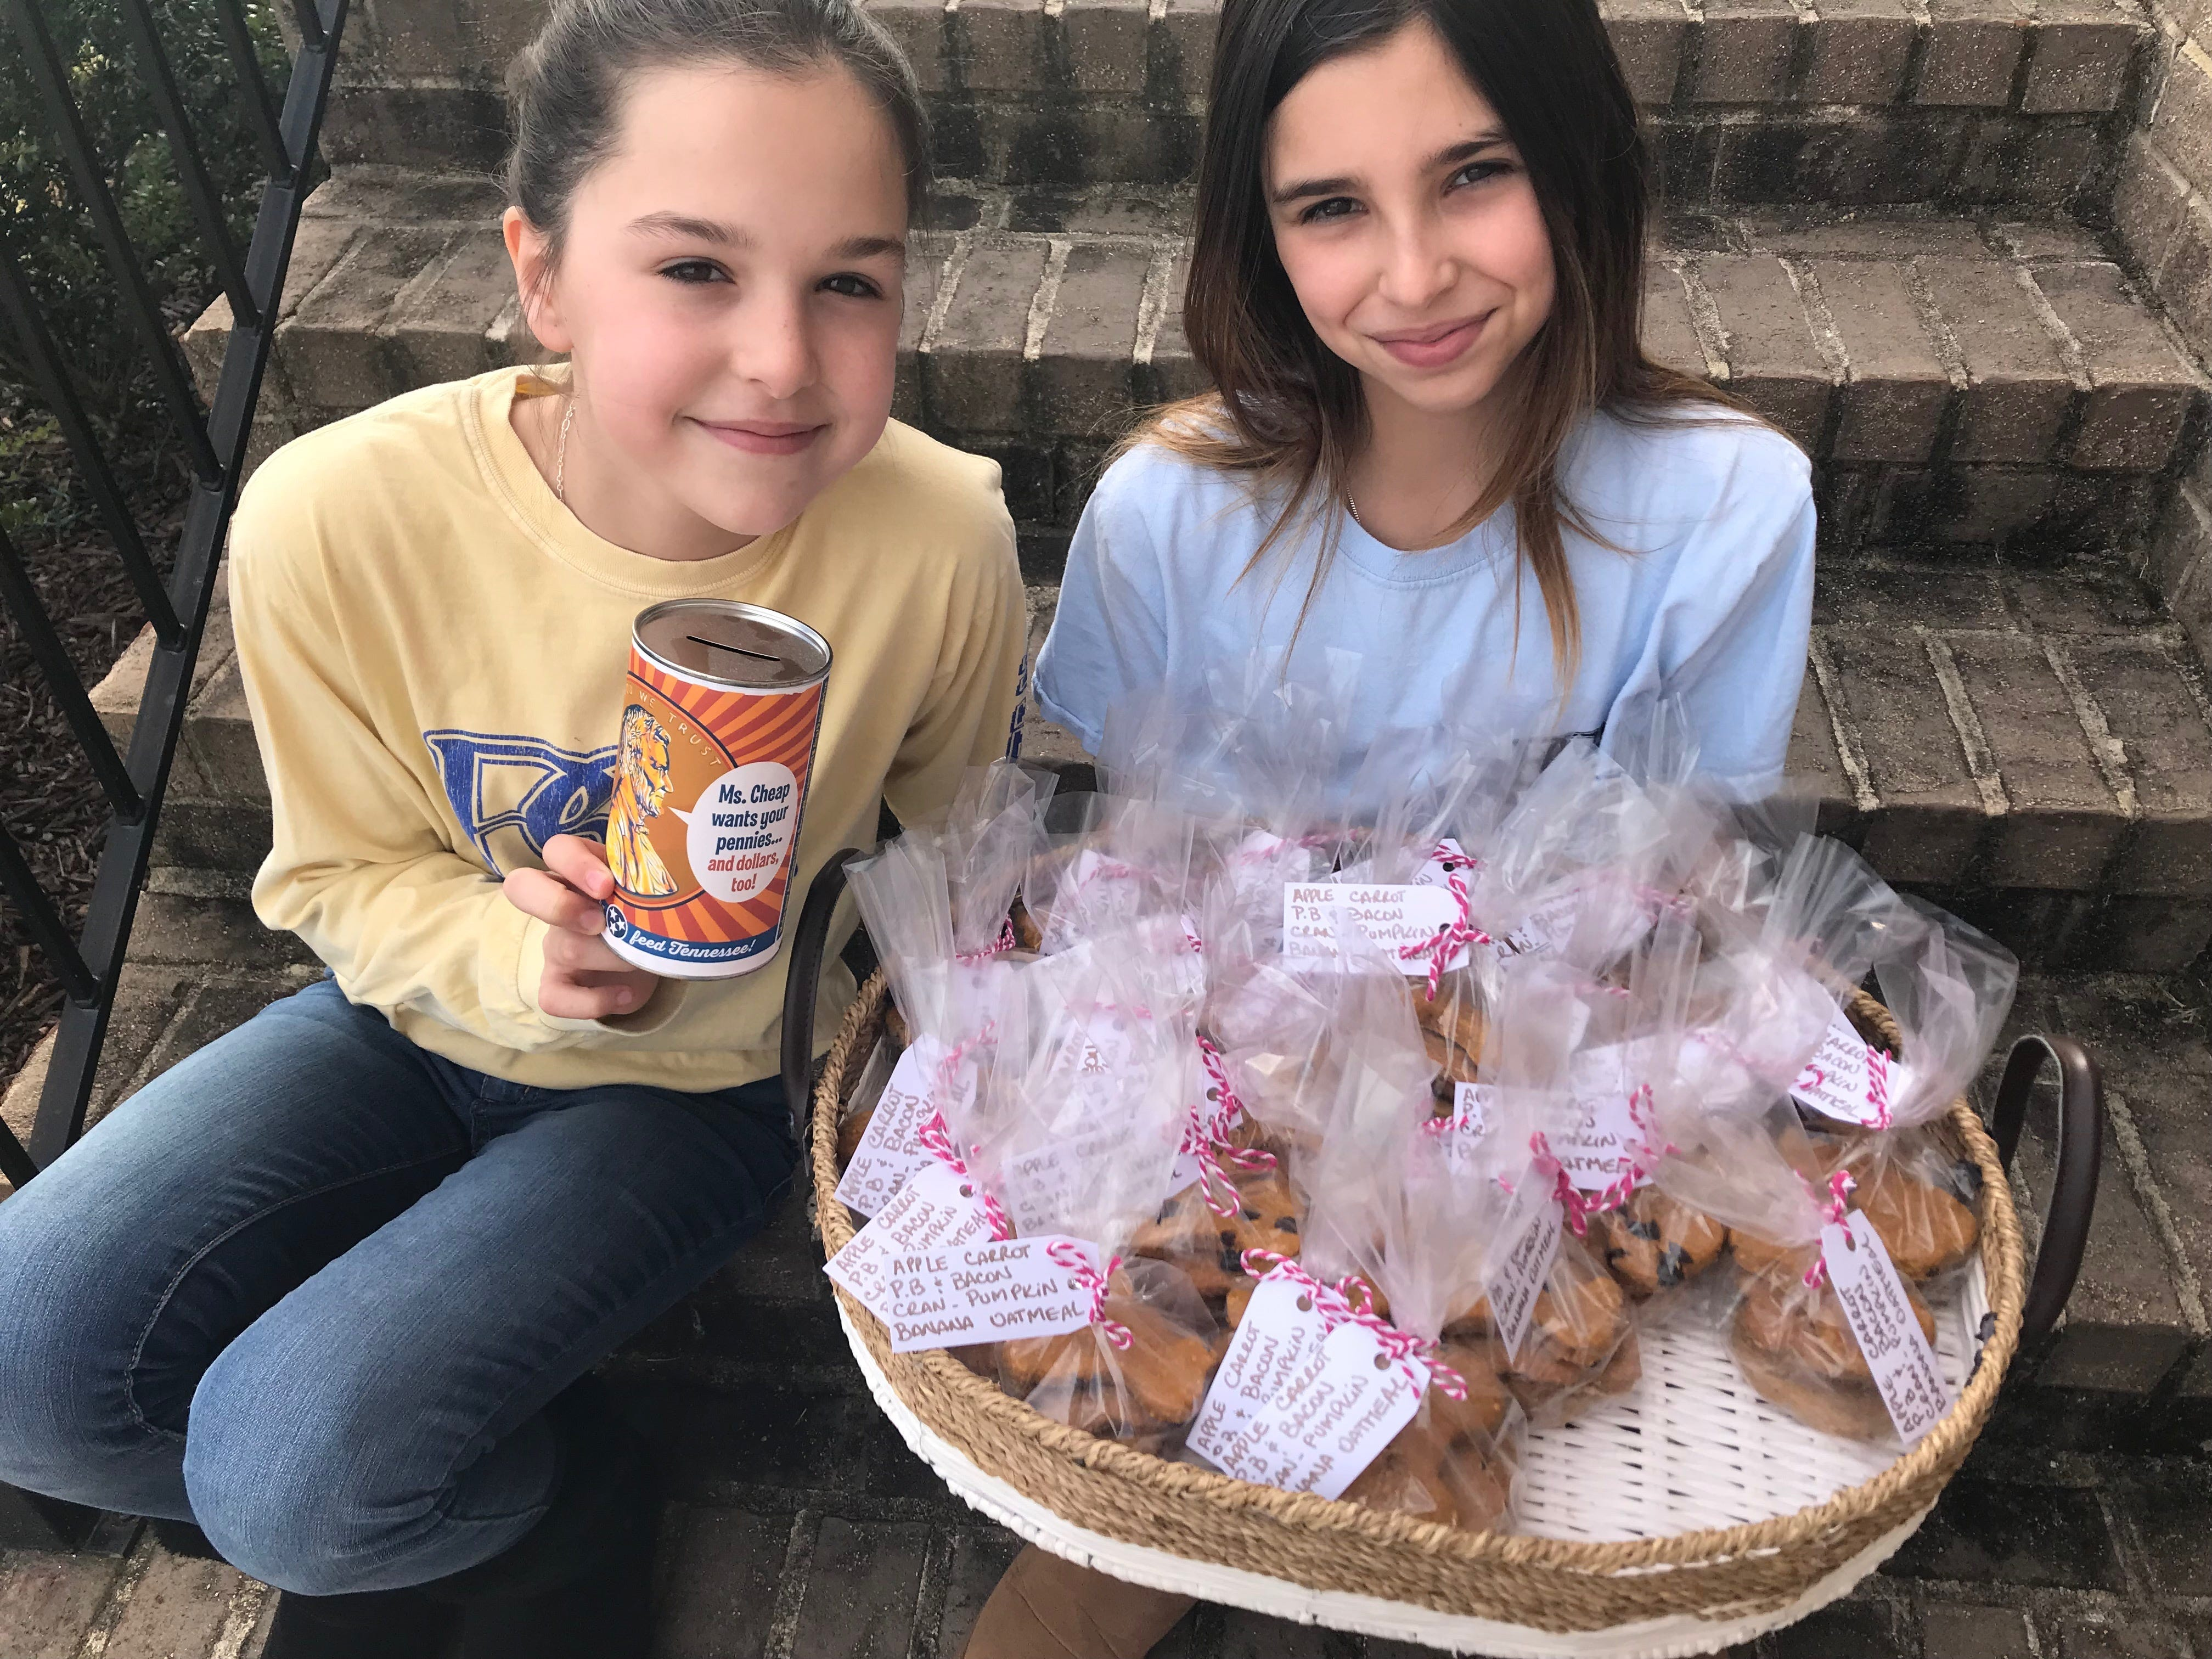 Twins Mia (left) and Zoe (right) Hawkersmith made and sold dog treats in their neighborhood! They collected $470.